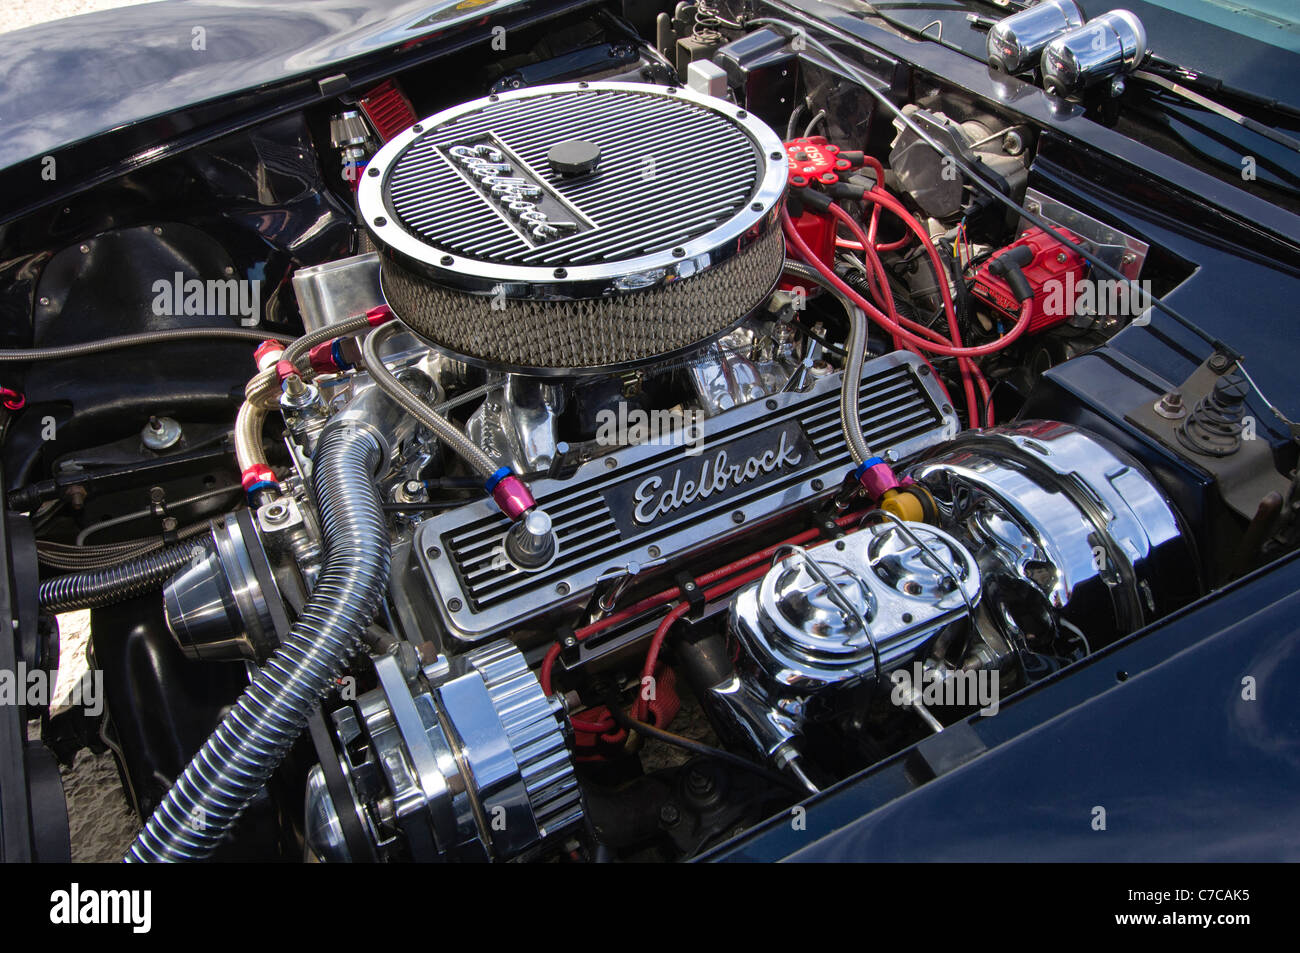 corvette engine stock photos corvette engine stock images alamy. Black Bedroom Furniture Sets. Home Design Ideas